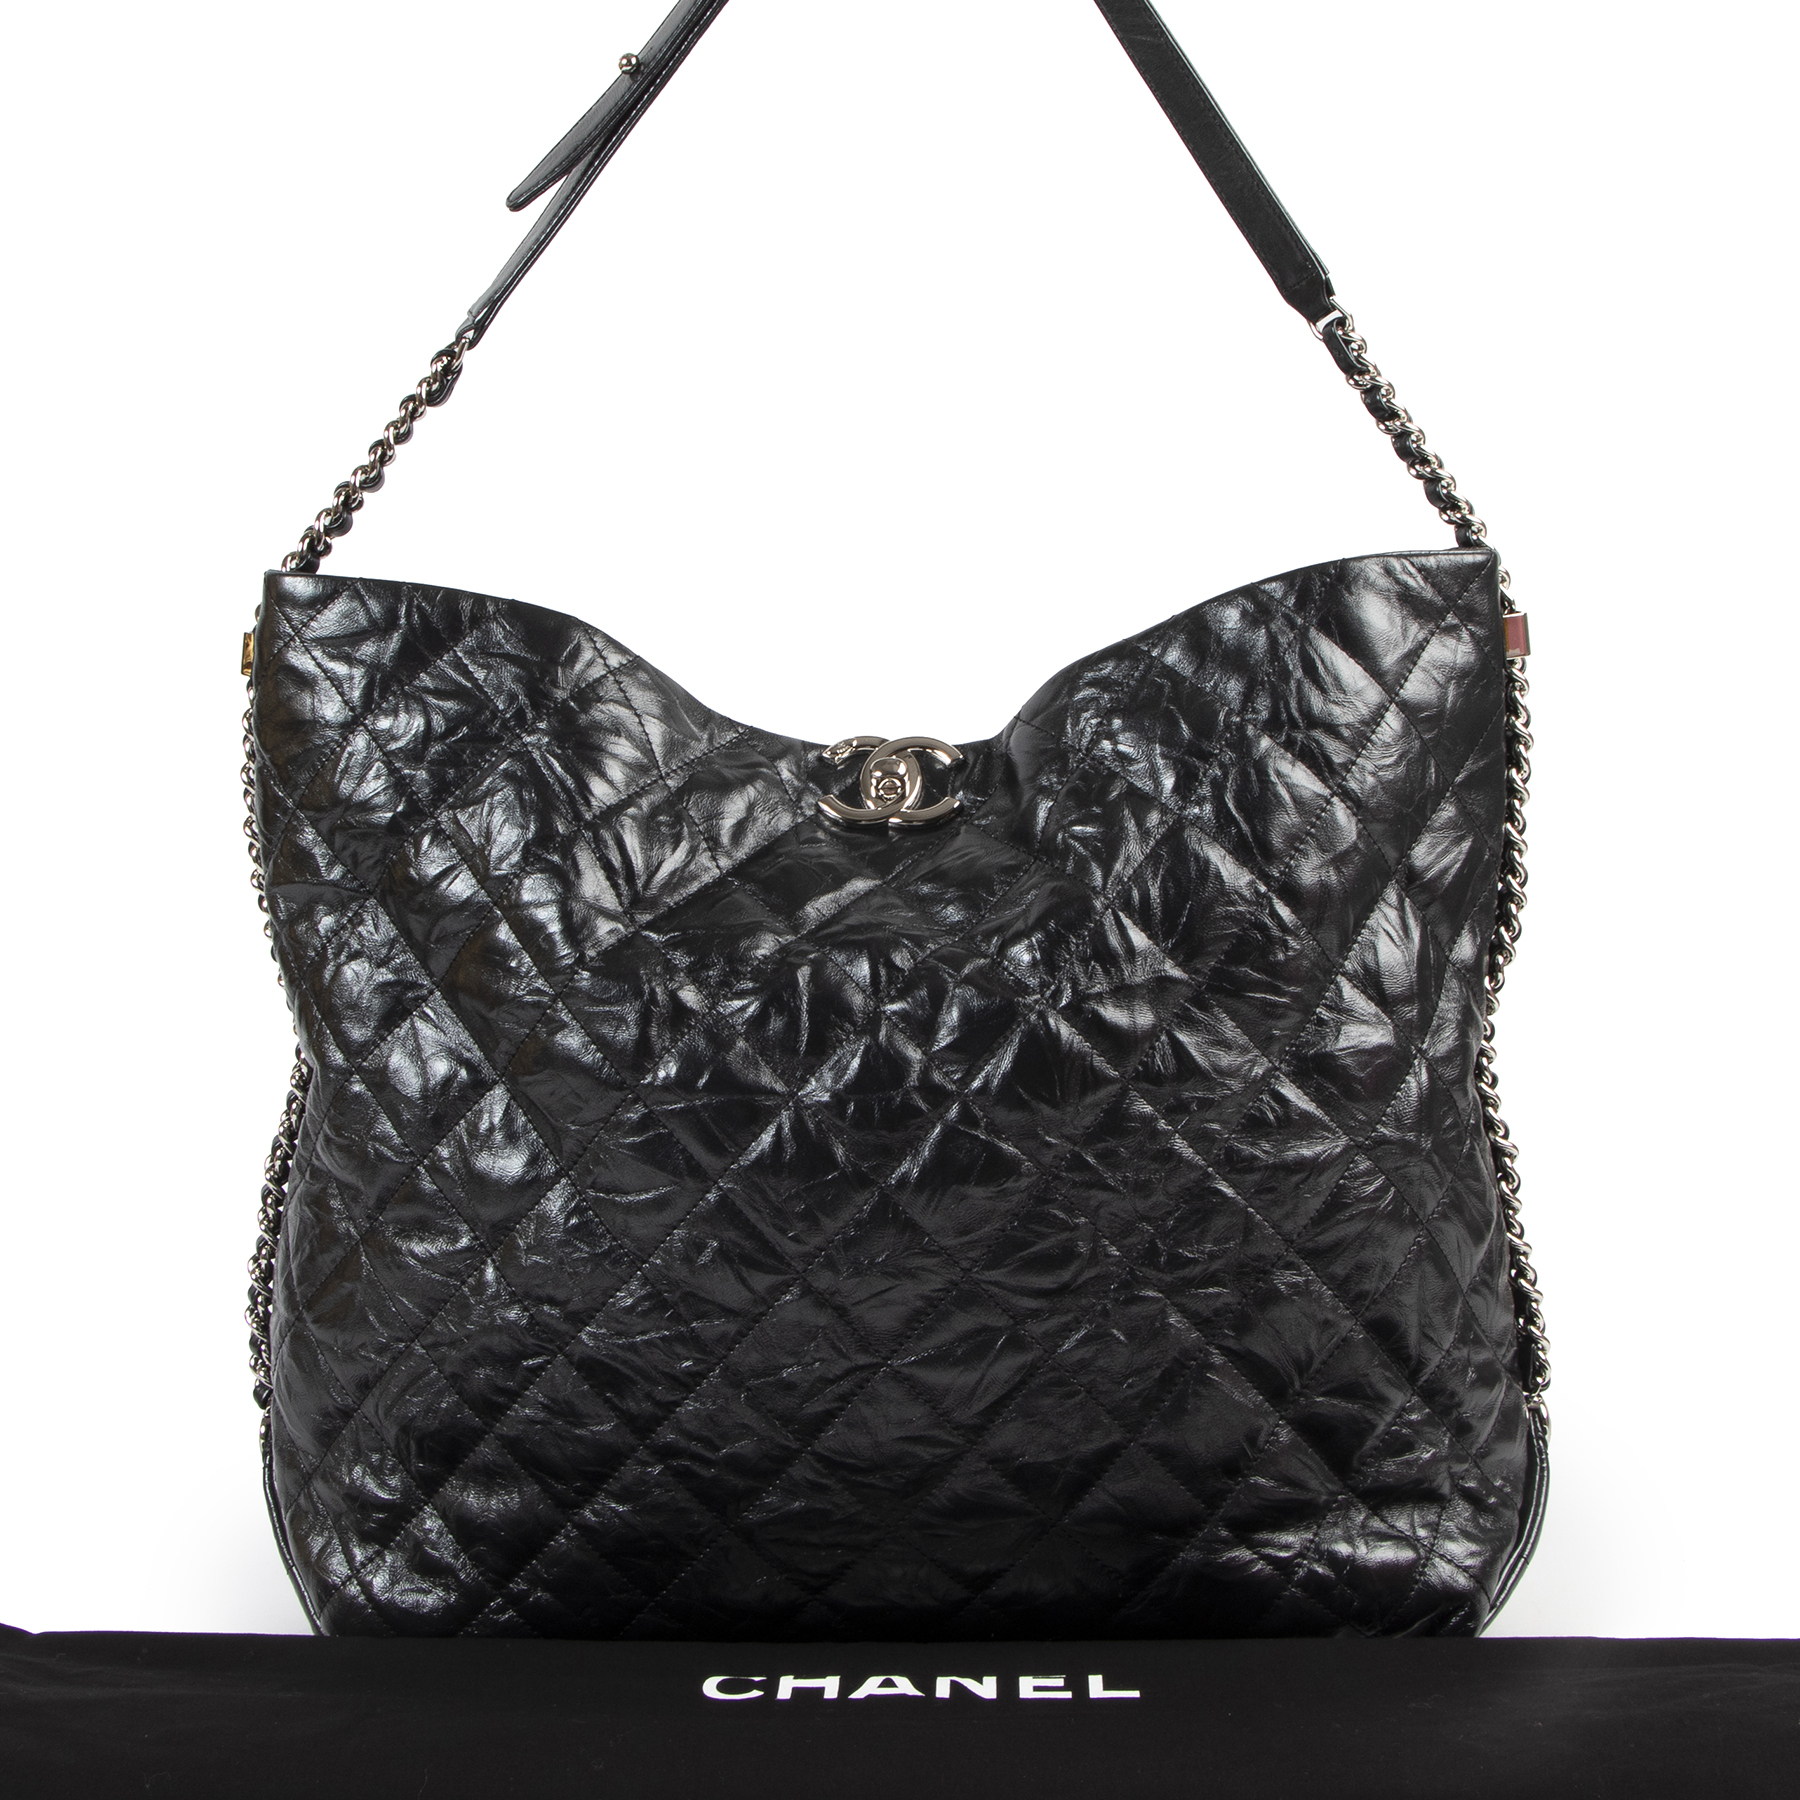 Authentic secondhand Chanel Black Quilted Leather Shopping Tote Bag designer bags fashion luxury vintage webshop safe secure online shopping